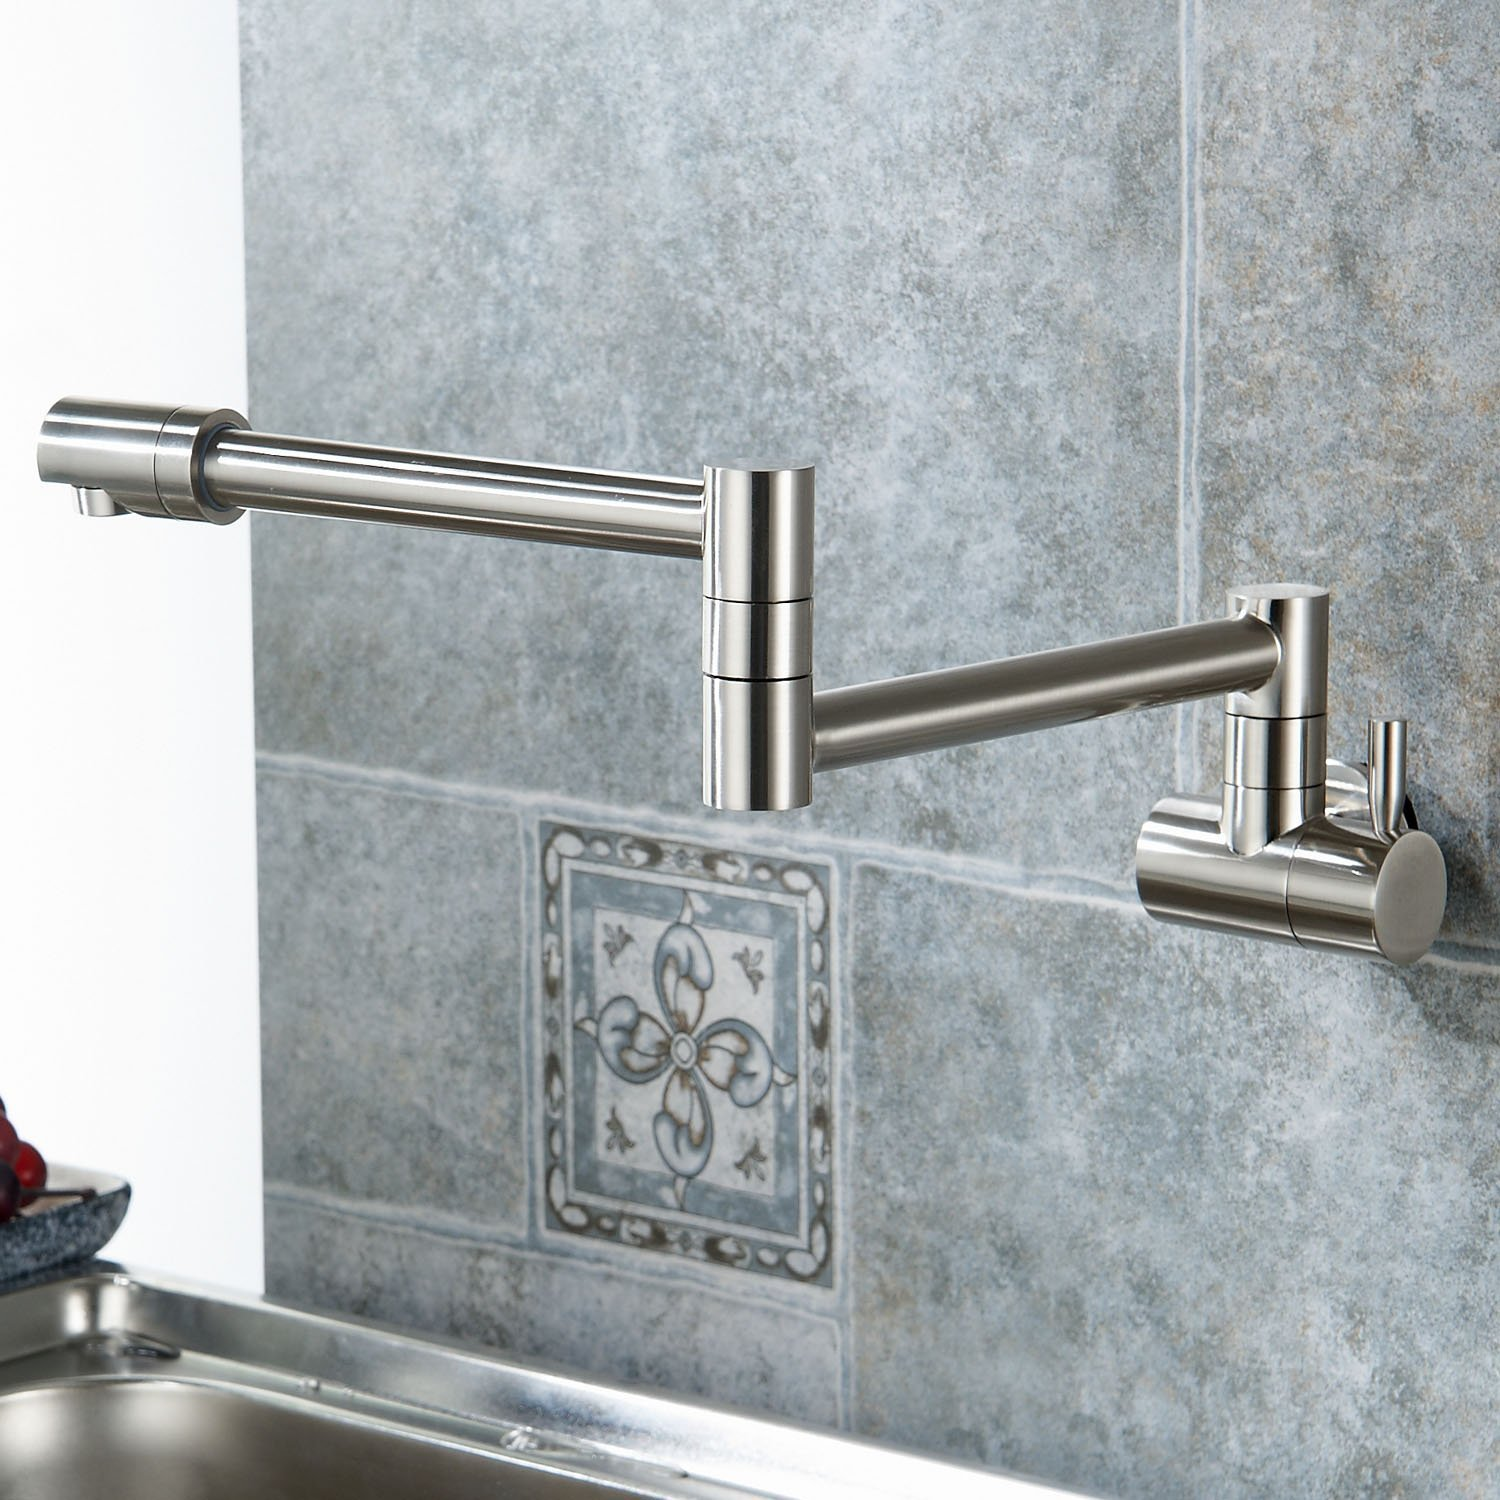 Aquafaucet Wall Mounted Pot Filler Kitchen Faucet With Double Joint ...